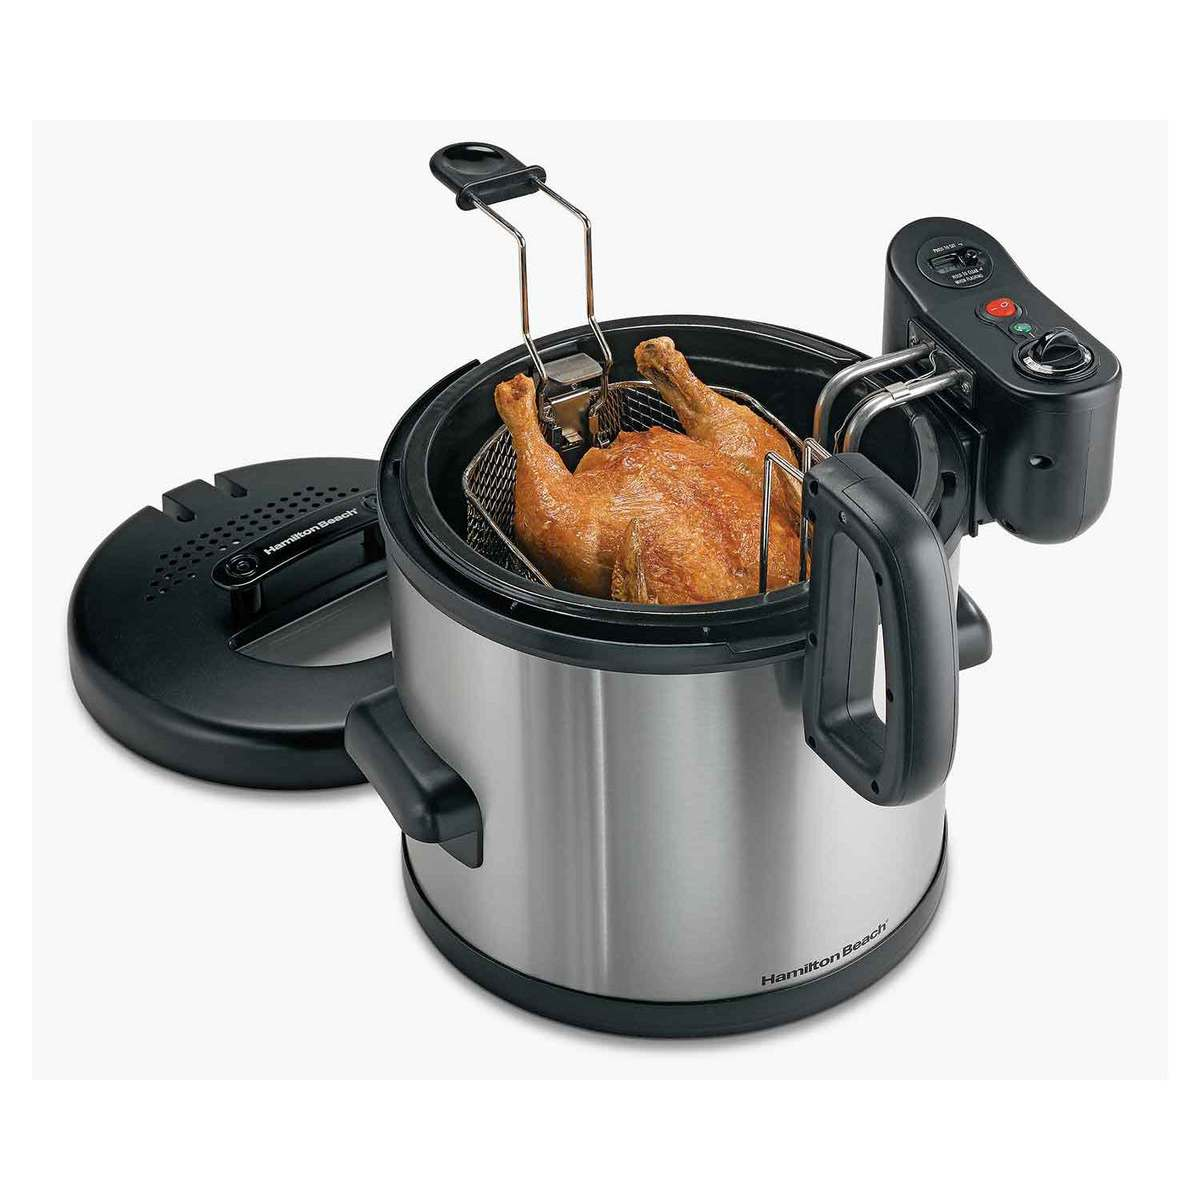 Meal Maker™ Multicooker (35135)